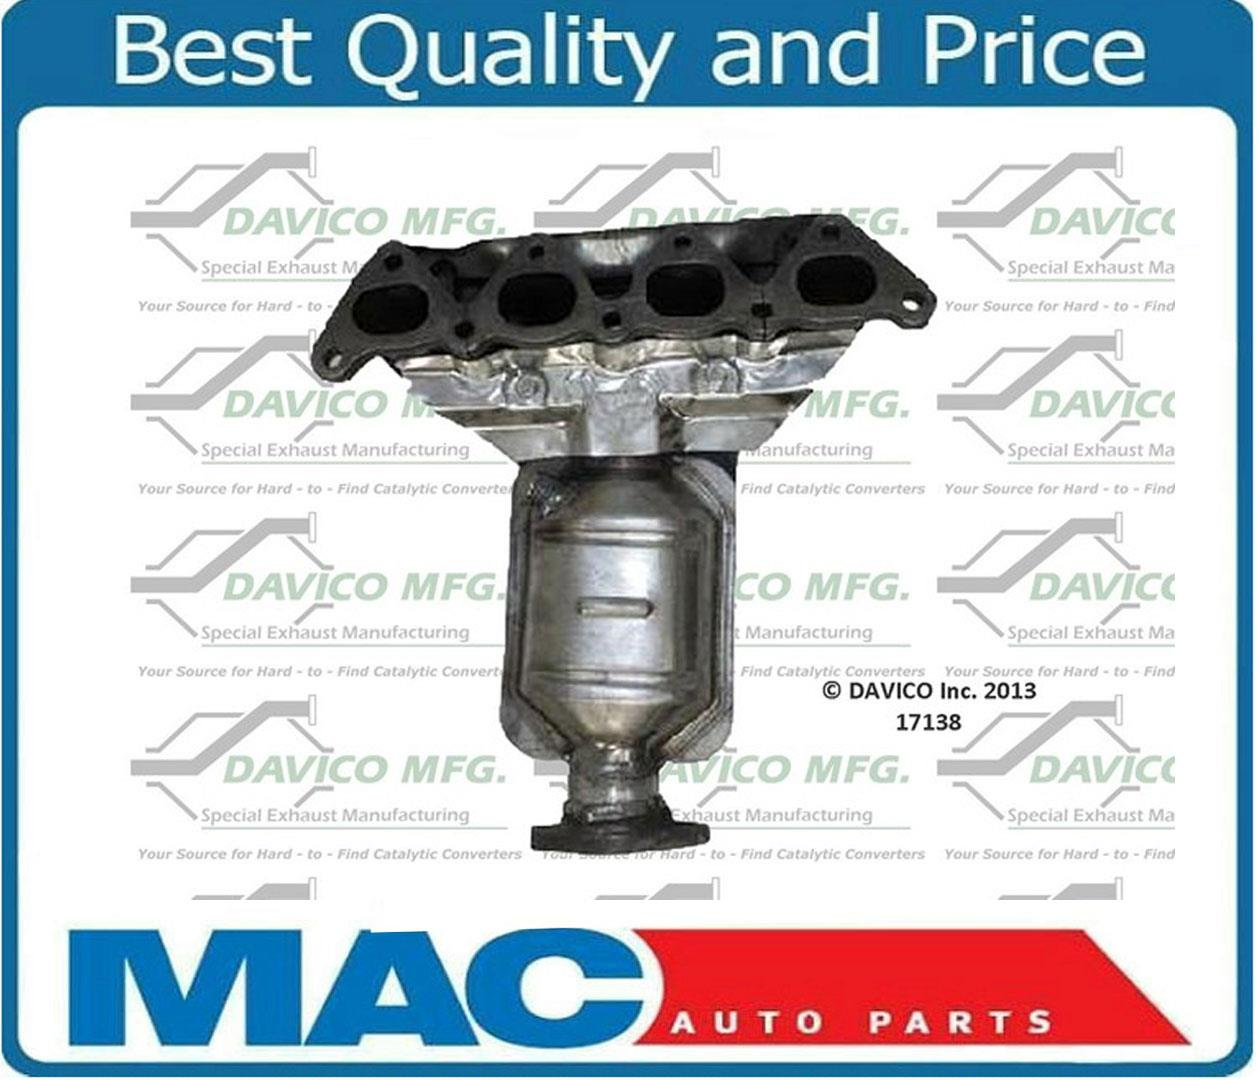 TUCSON 2.0L Manifold Catalytic Converter 2005 TO 2007 DIRECTFIT 8H55-48